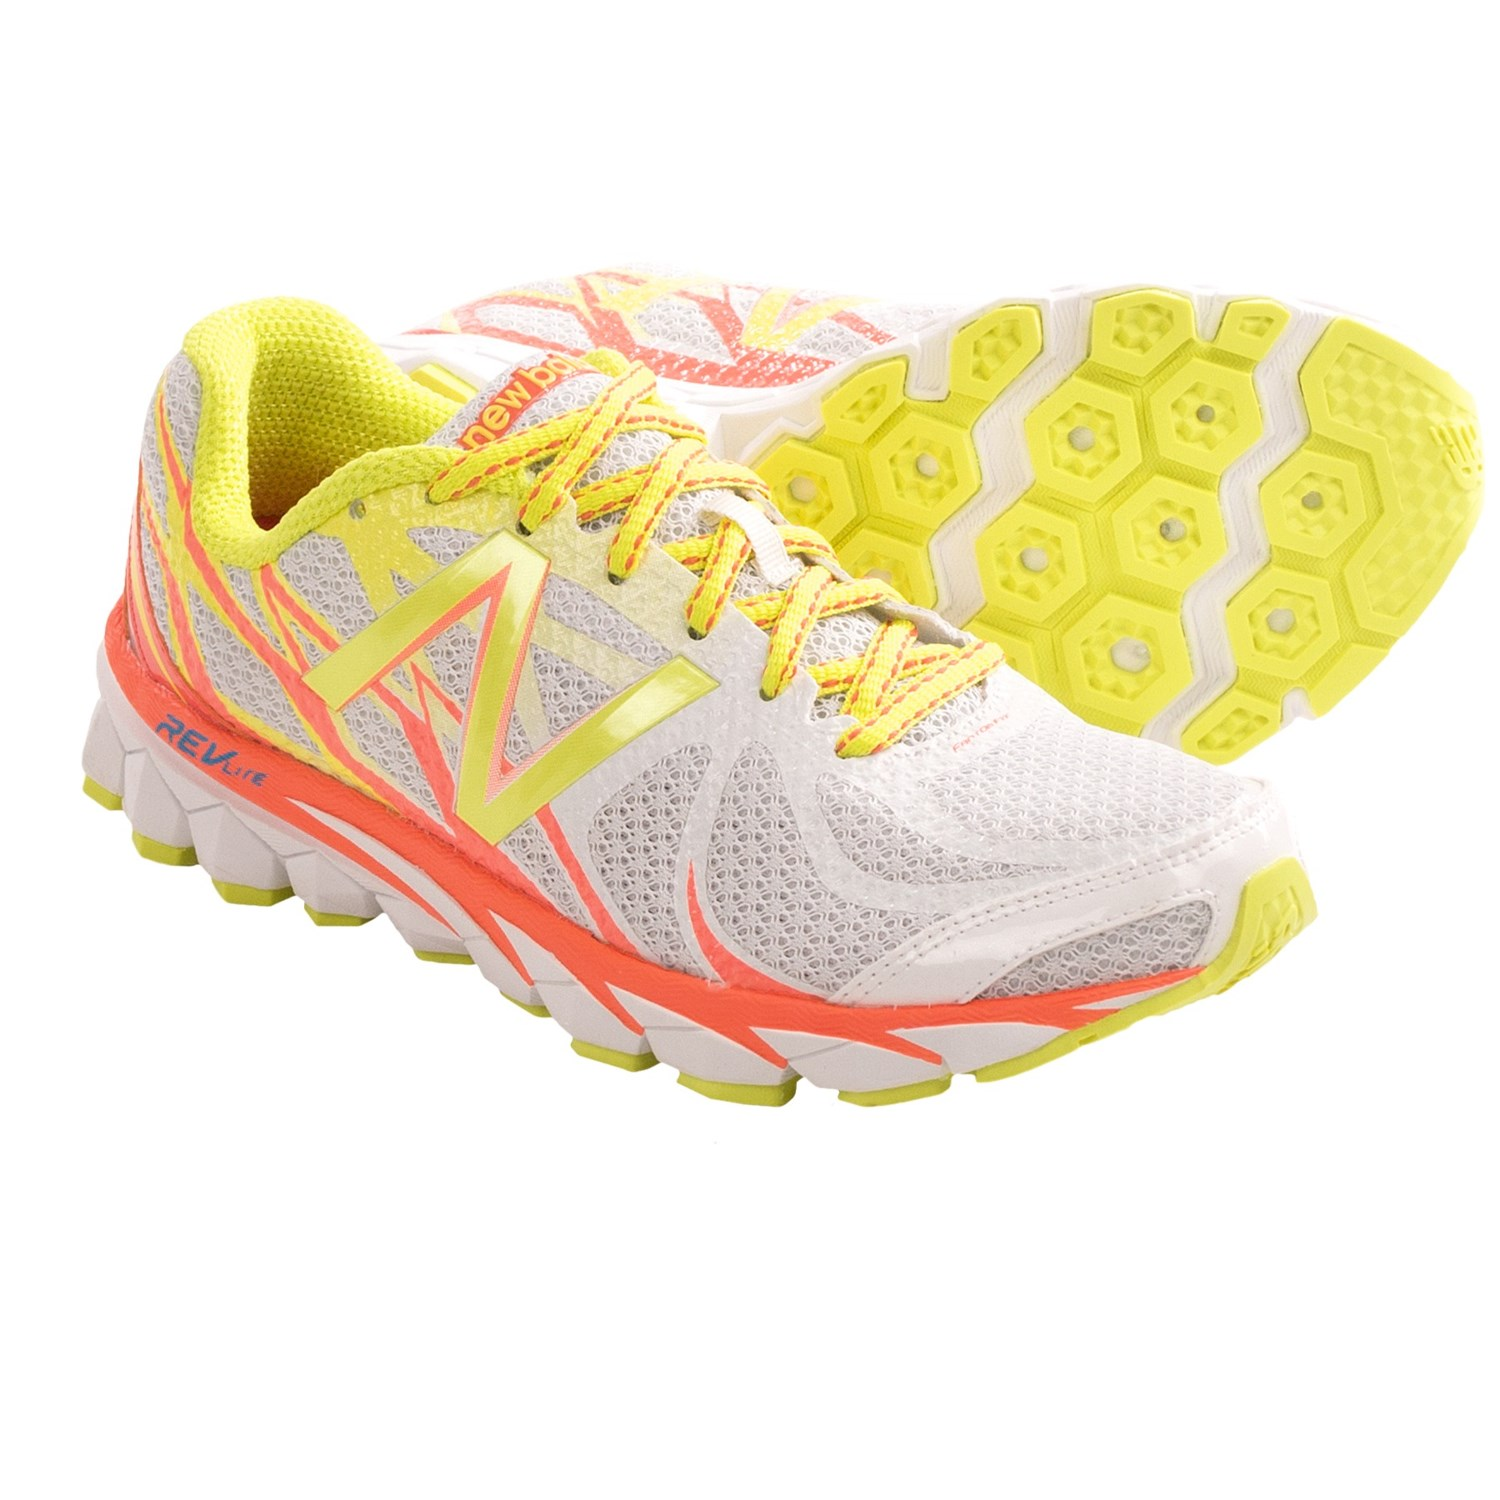 Free two day shipping and free returns on New Balance Women's Running Shoes